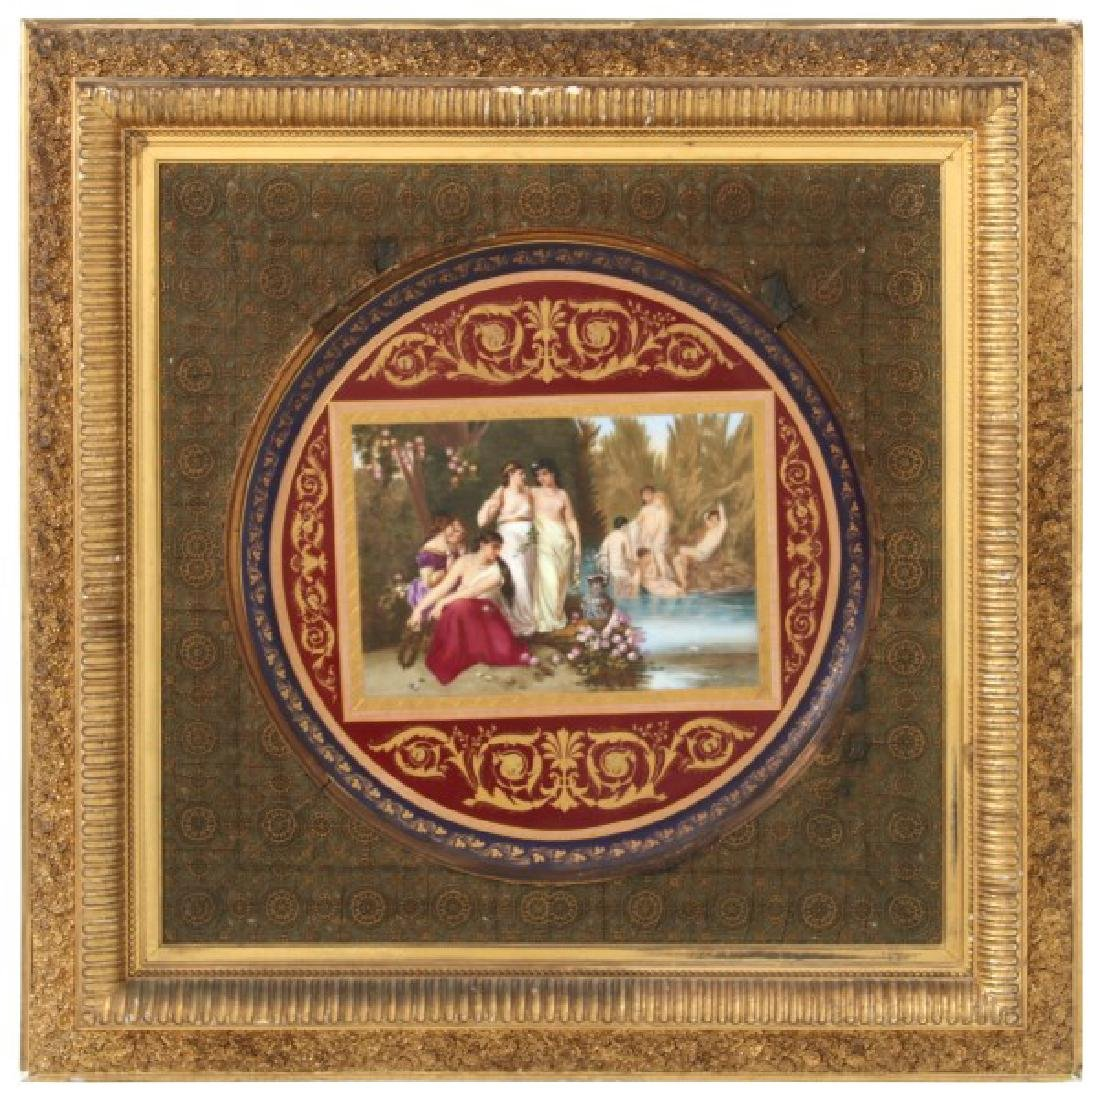 19 in. Royal Vienna Hand Painted Porcelain Charger